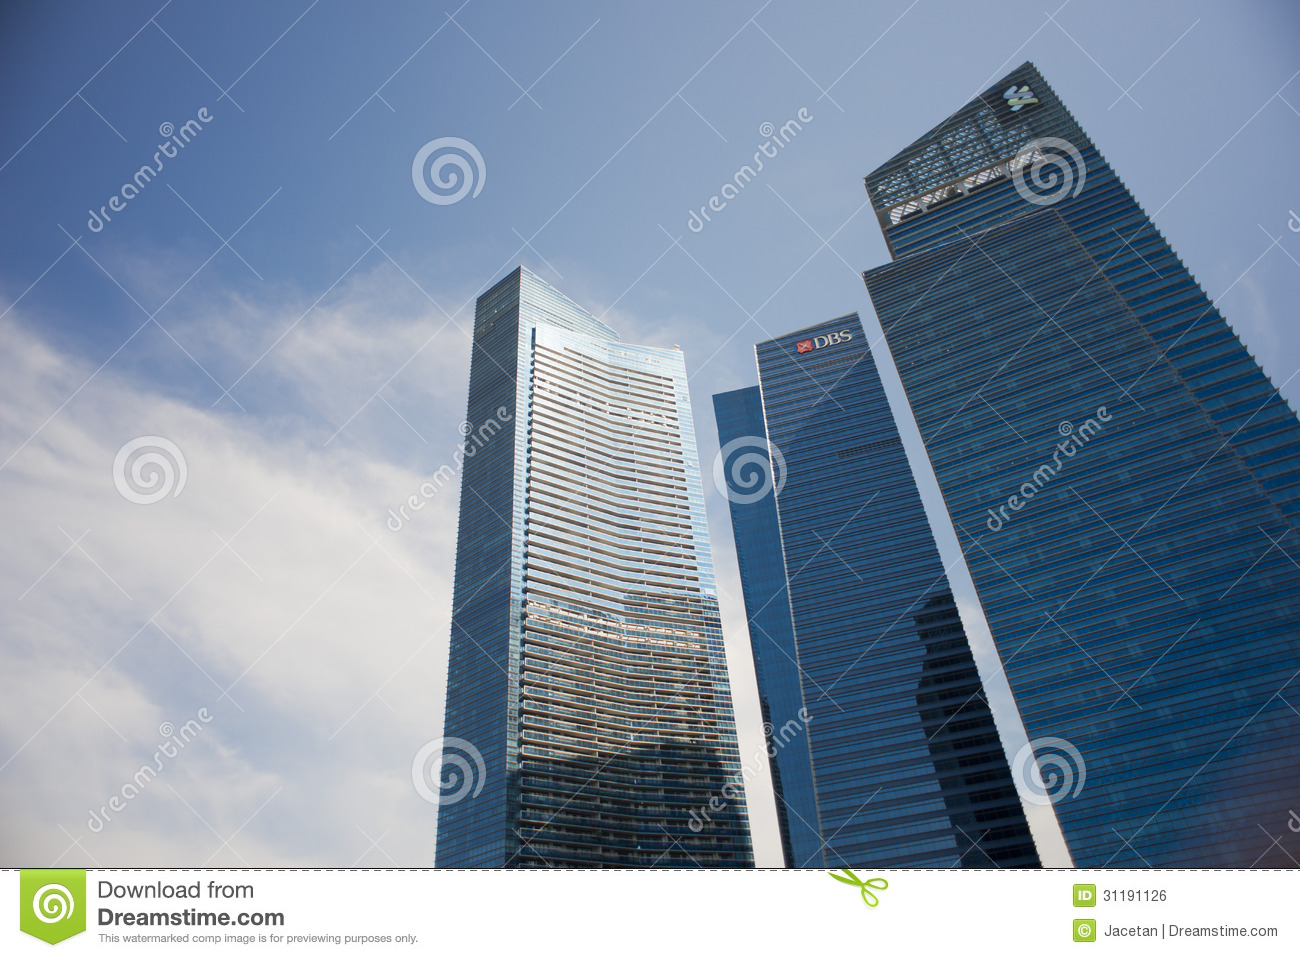 Dbs And Standard Chartered Building At Marina Bay Financial Center Editorial Photo Image 31191126